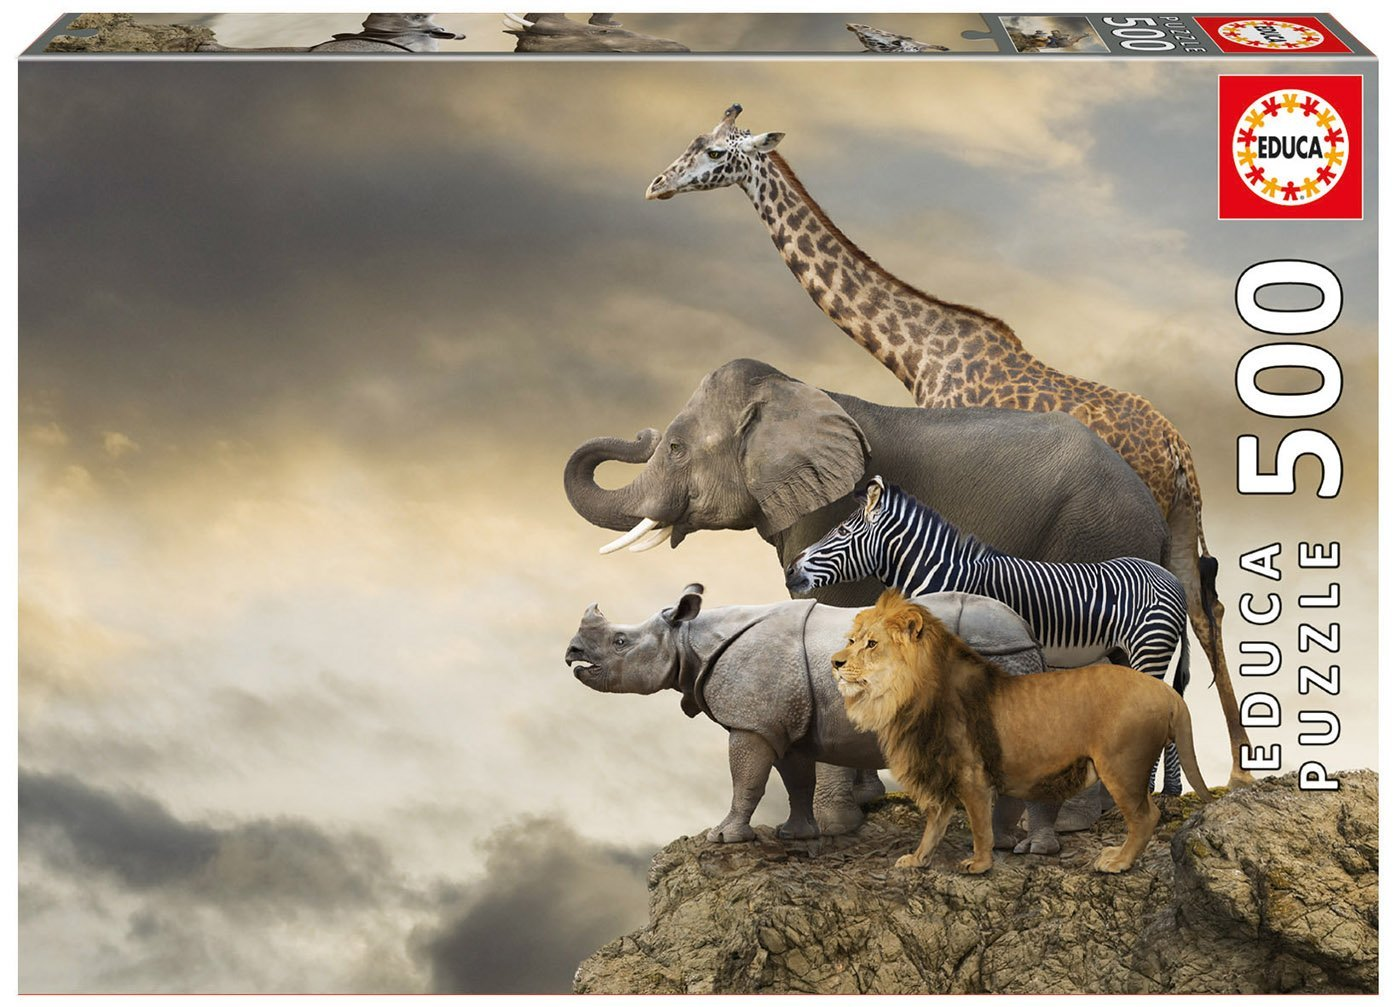 animals-on-the-edge-of-a-cliff